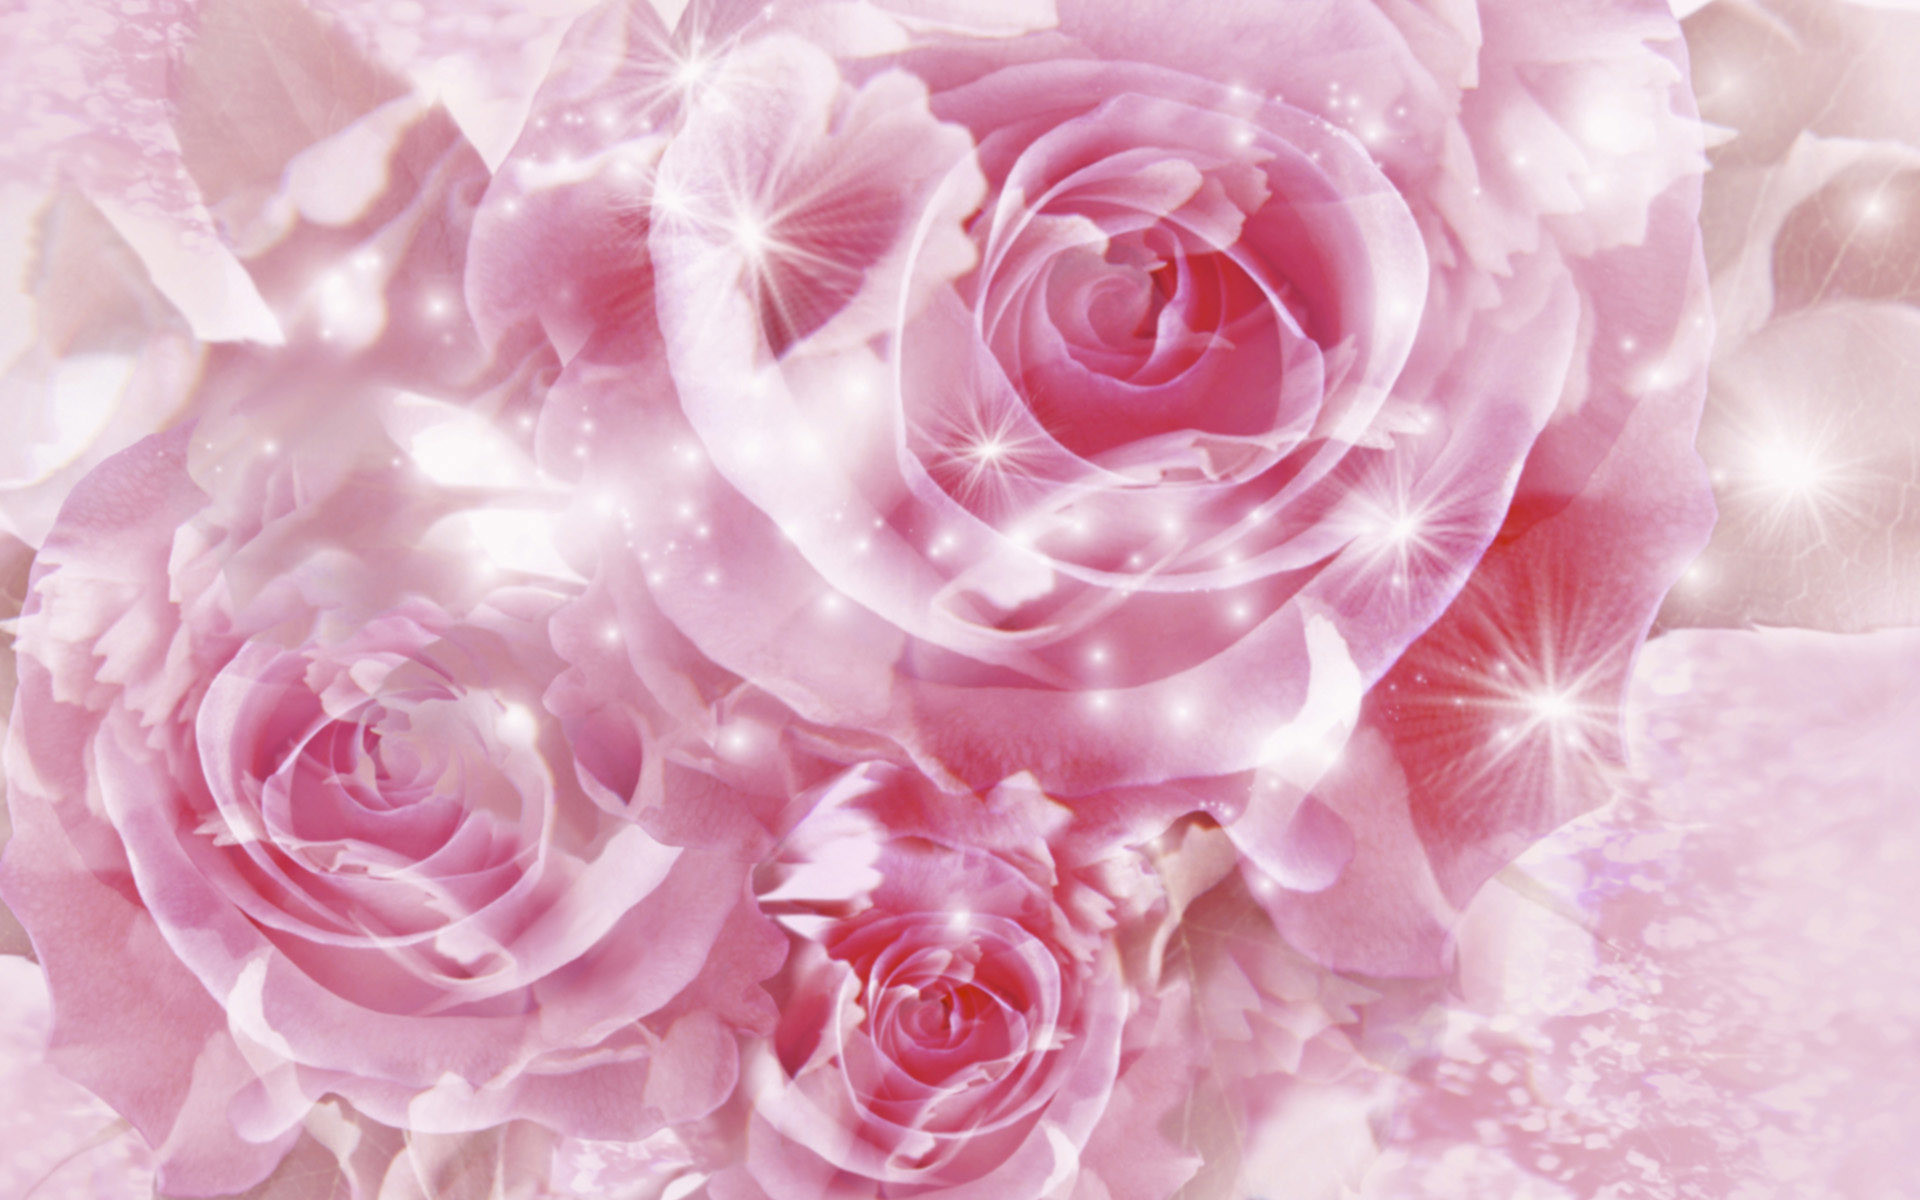 1920x1200 HD Wallpaper and background photos of Pretty Pink Roses Wallpaper for fans  of Pink (Color) images.